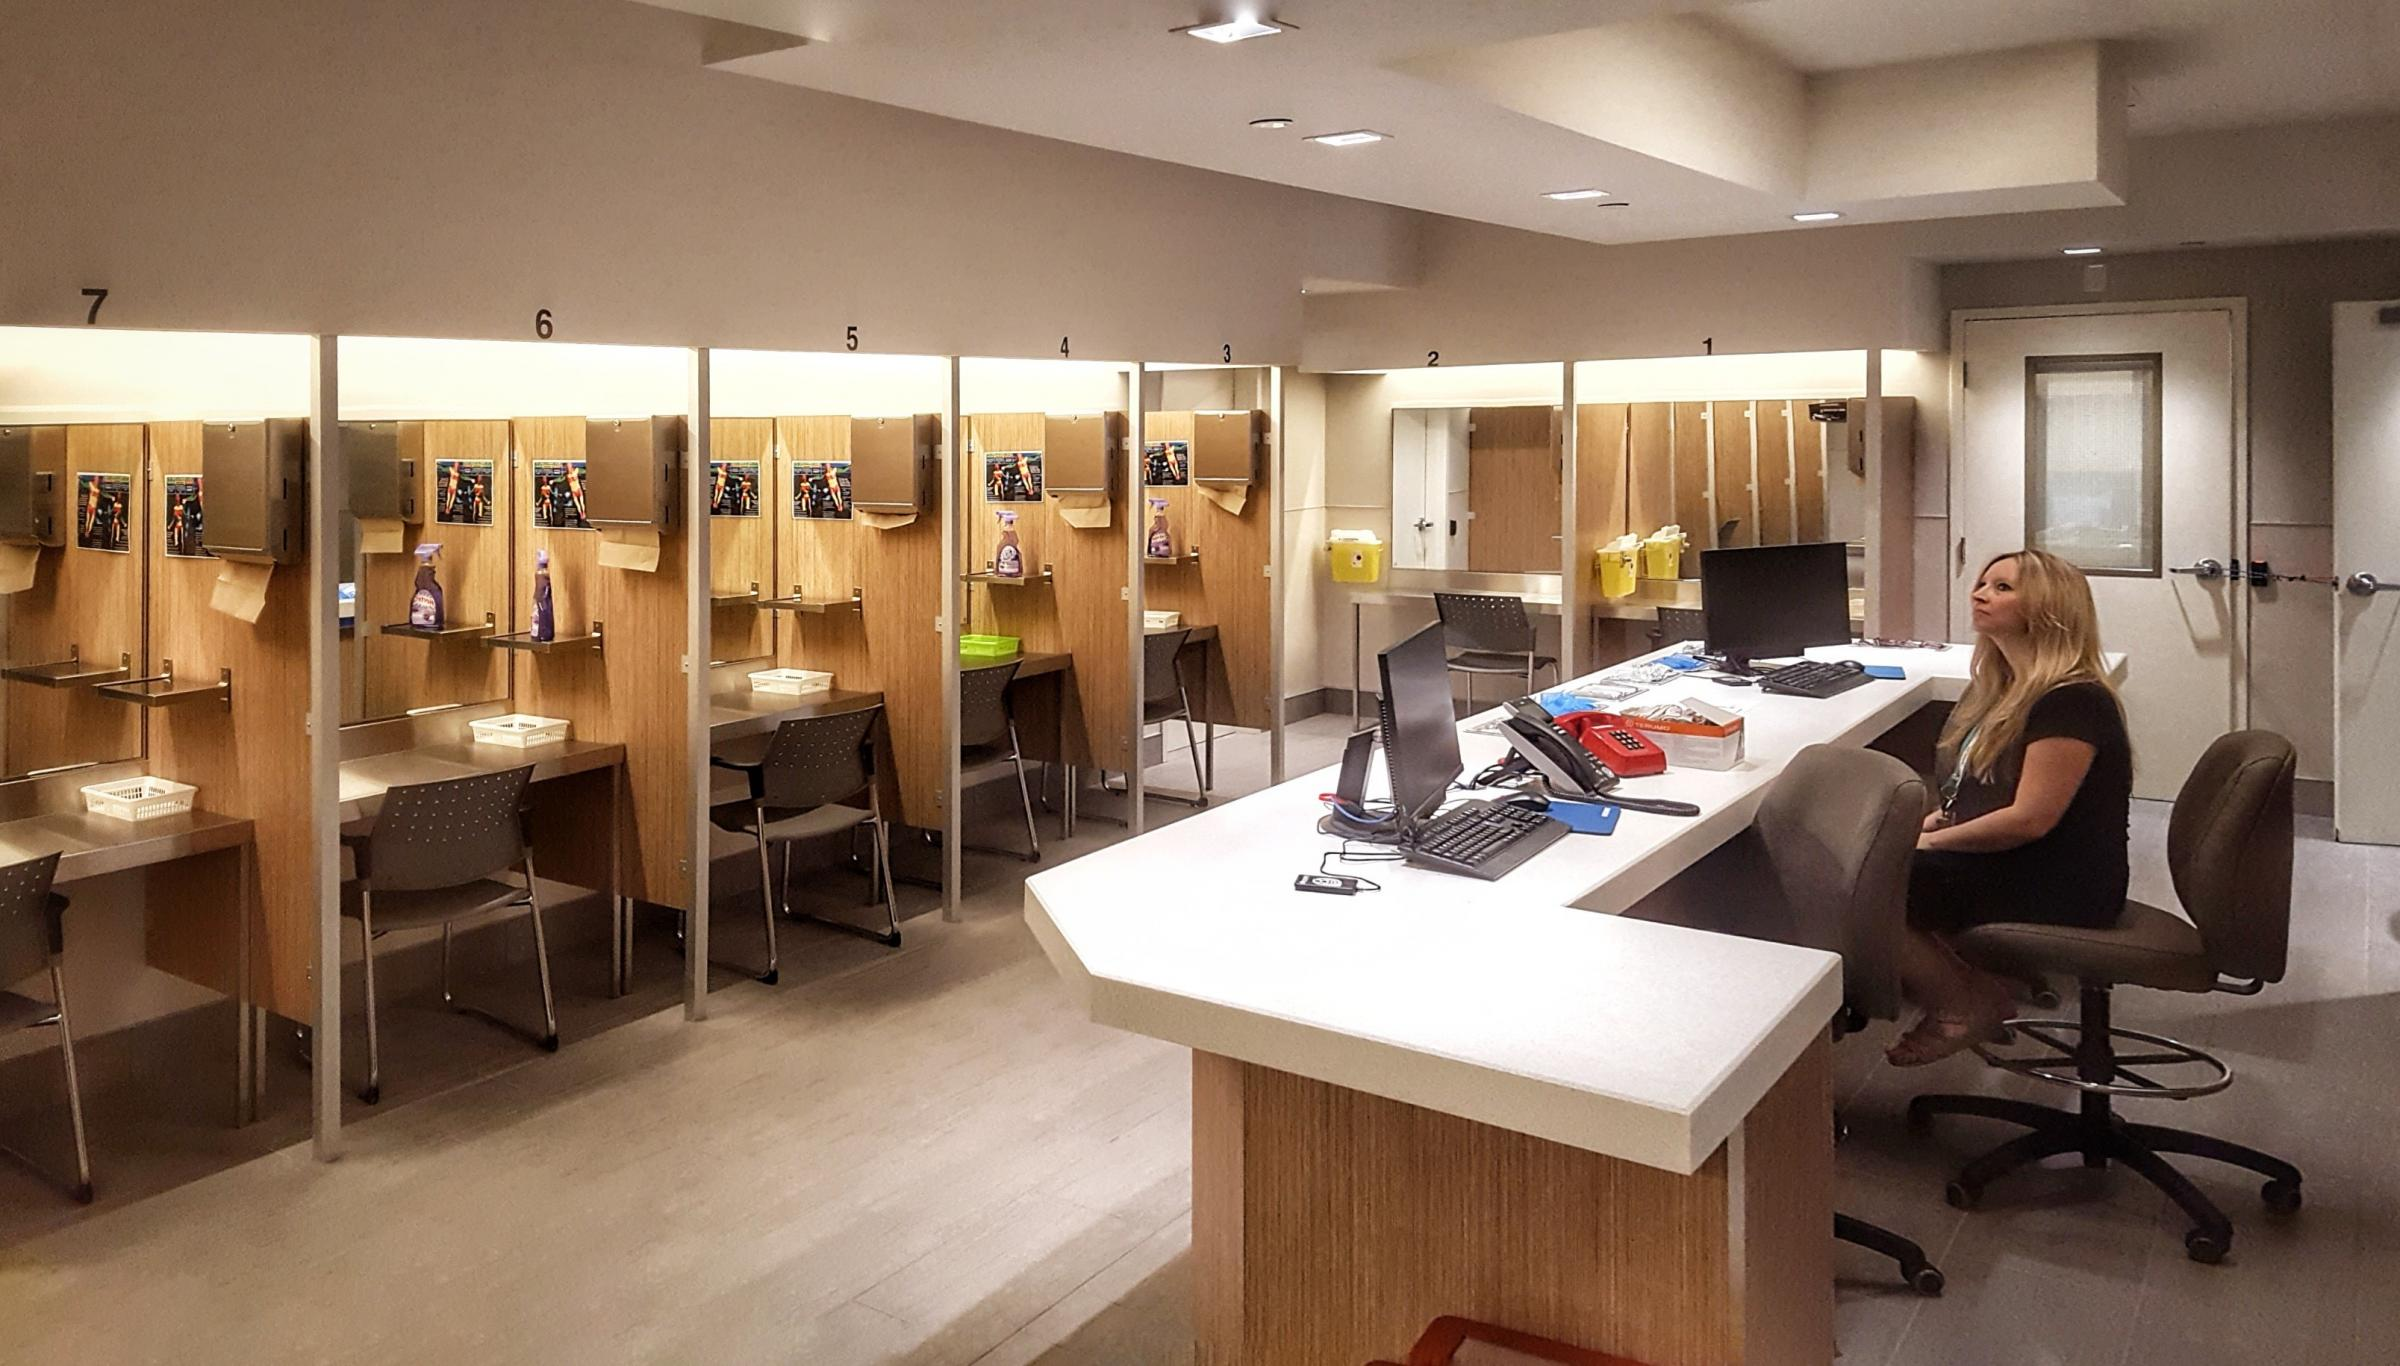 The latest safe injecting centre to open, in Montreal, Canada